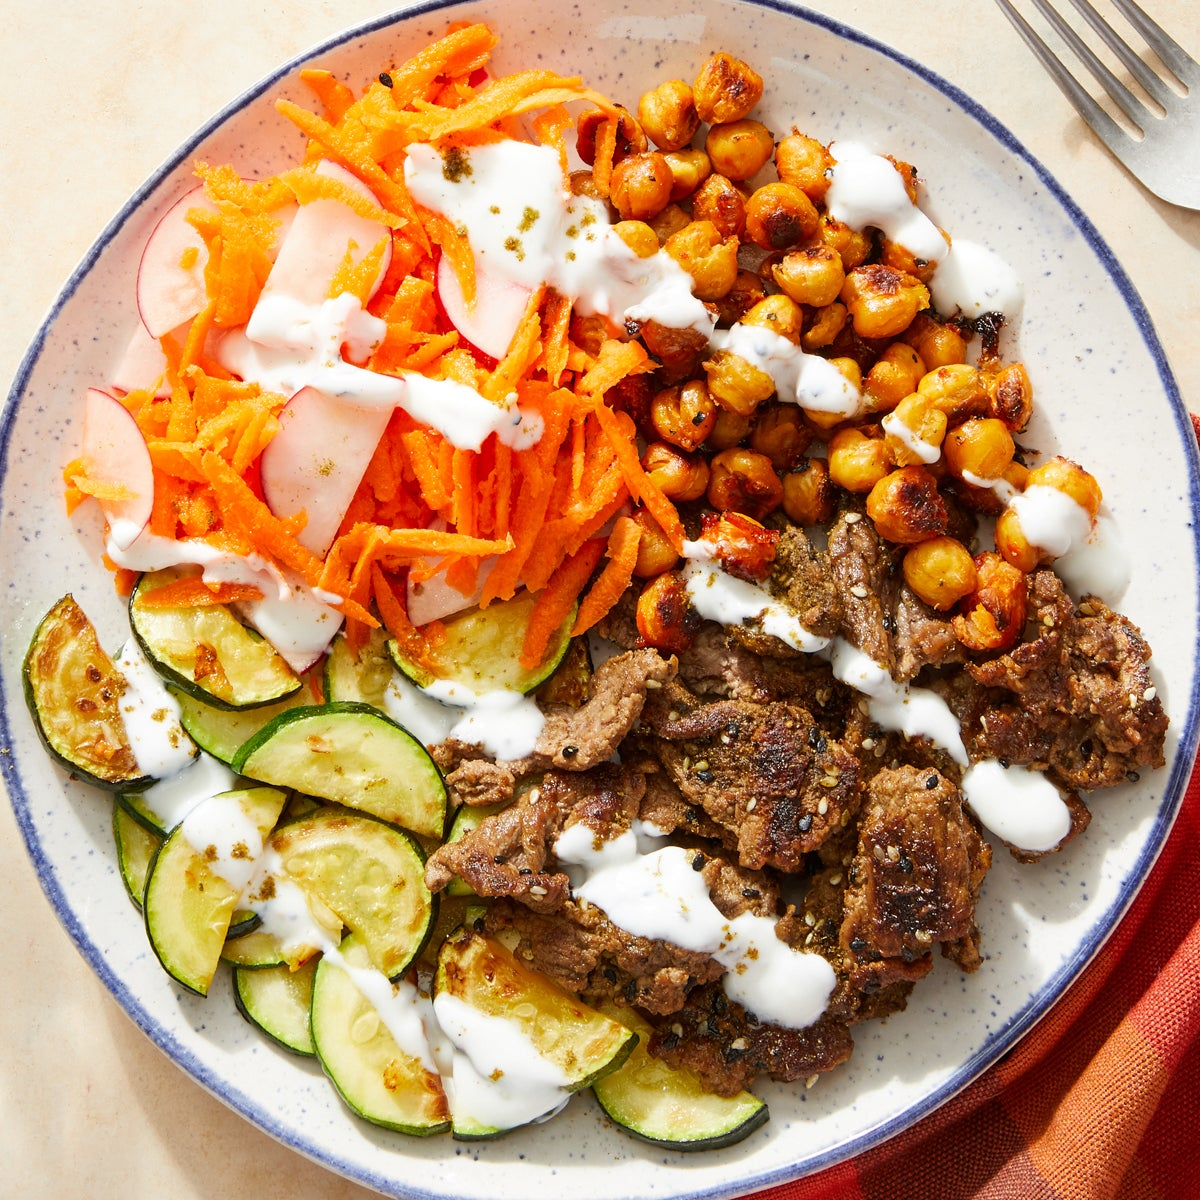 Za'atar-Spiced Beef Mezze Plate with Harissa-Roasted Chickpeas & Yogurt